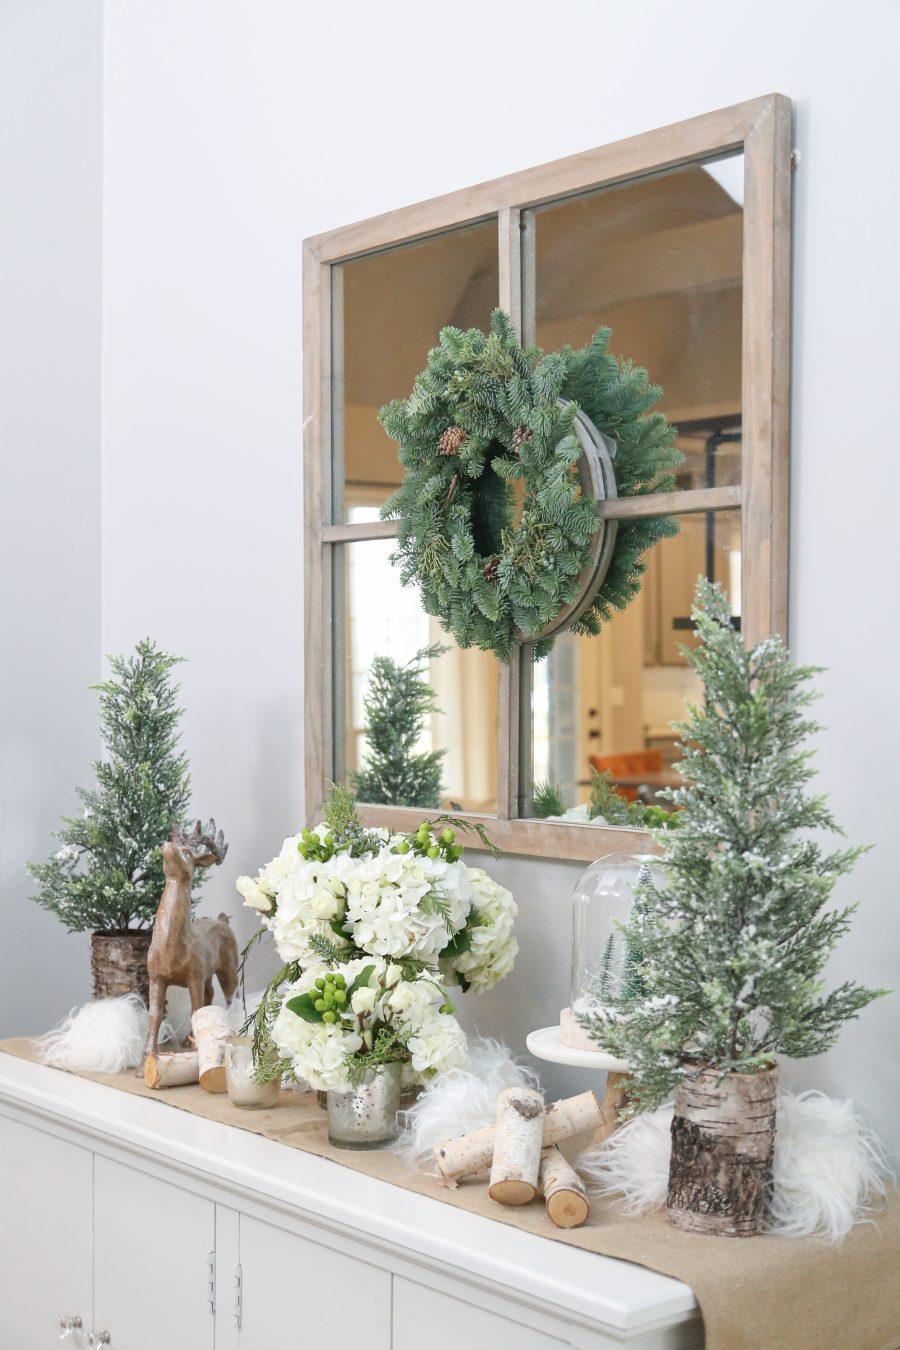 Black Friday and Cyber Monday Sales from Wayfair Mirror with Christmas wreath over tabletop christmas decor